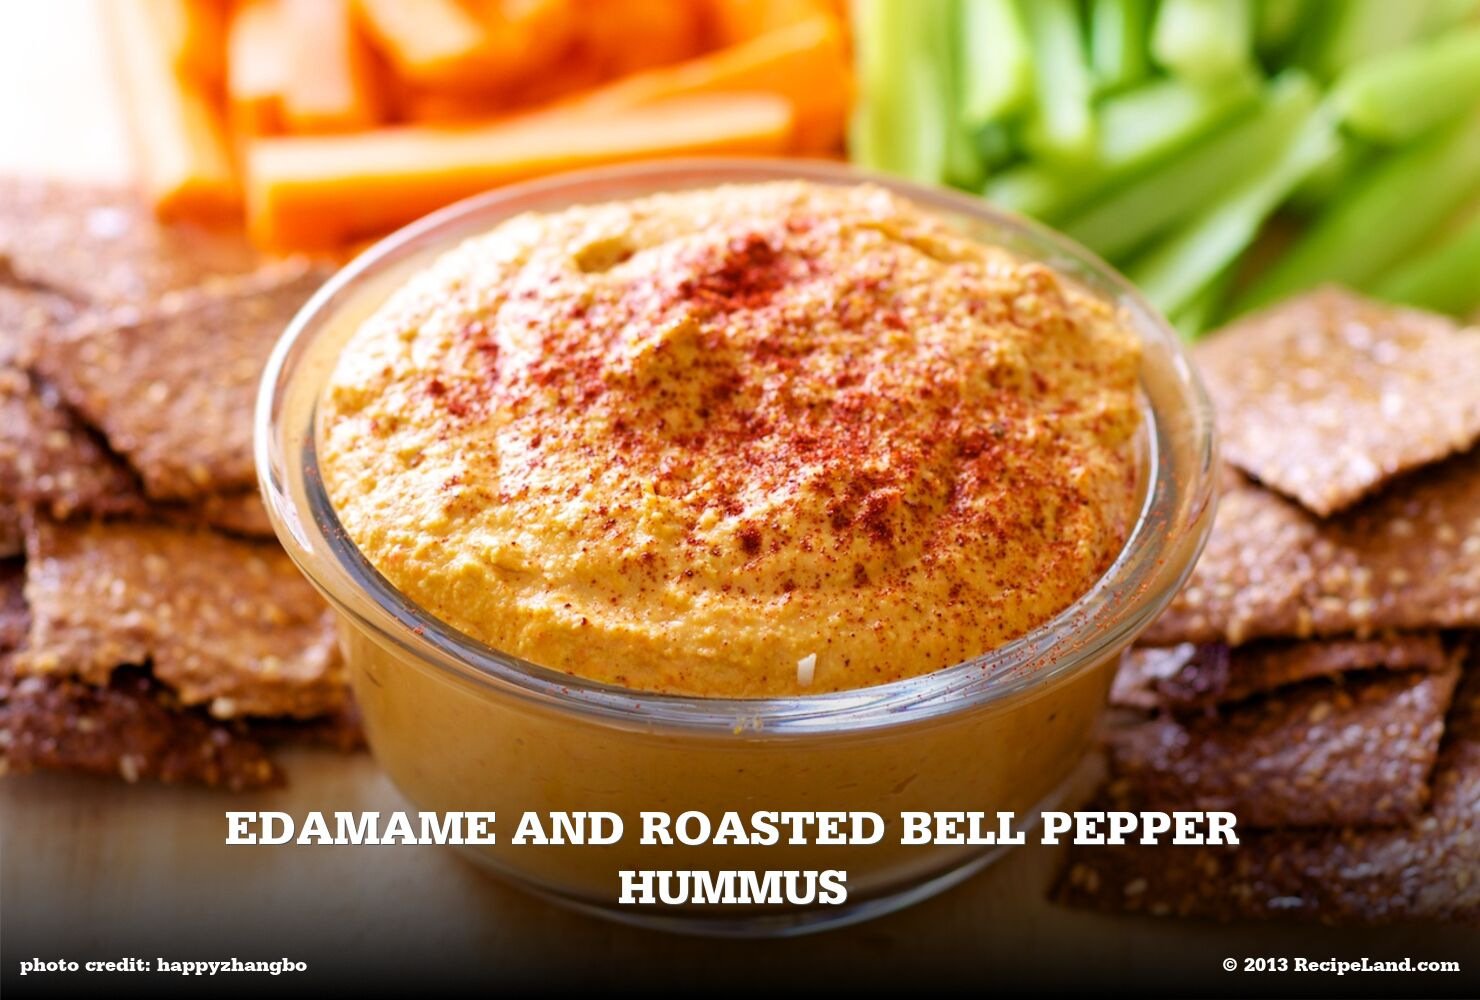 Edamame and Roasted Bell Pepper Hummus